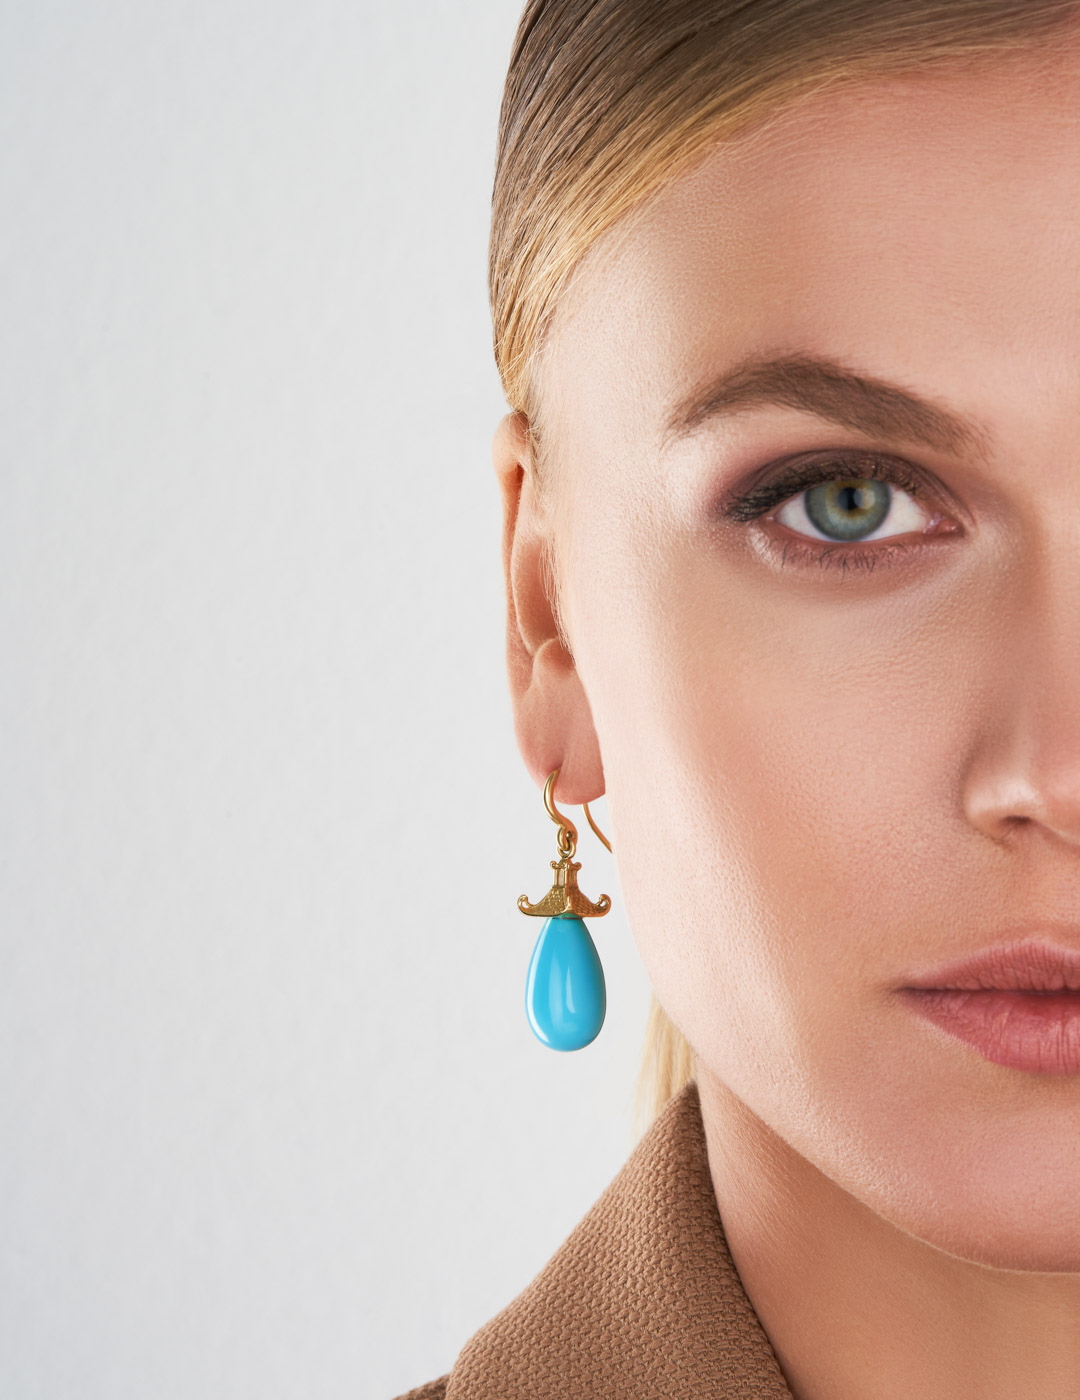 mish_products_earrings_Pagoda-Turq-ER-2